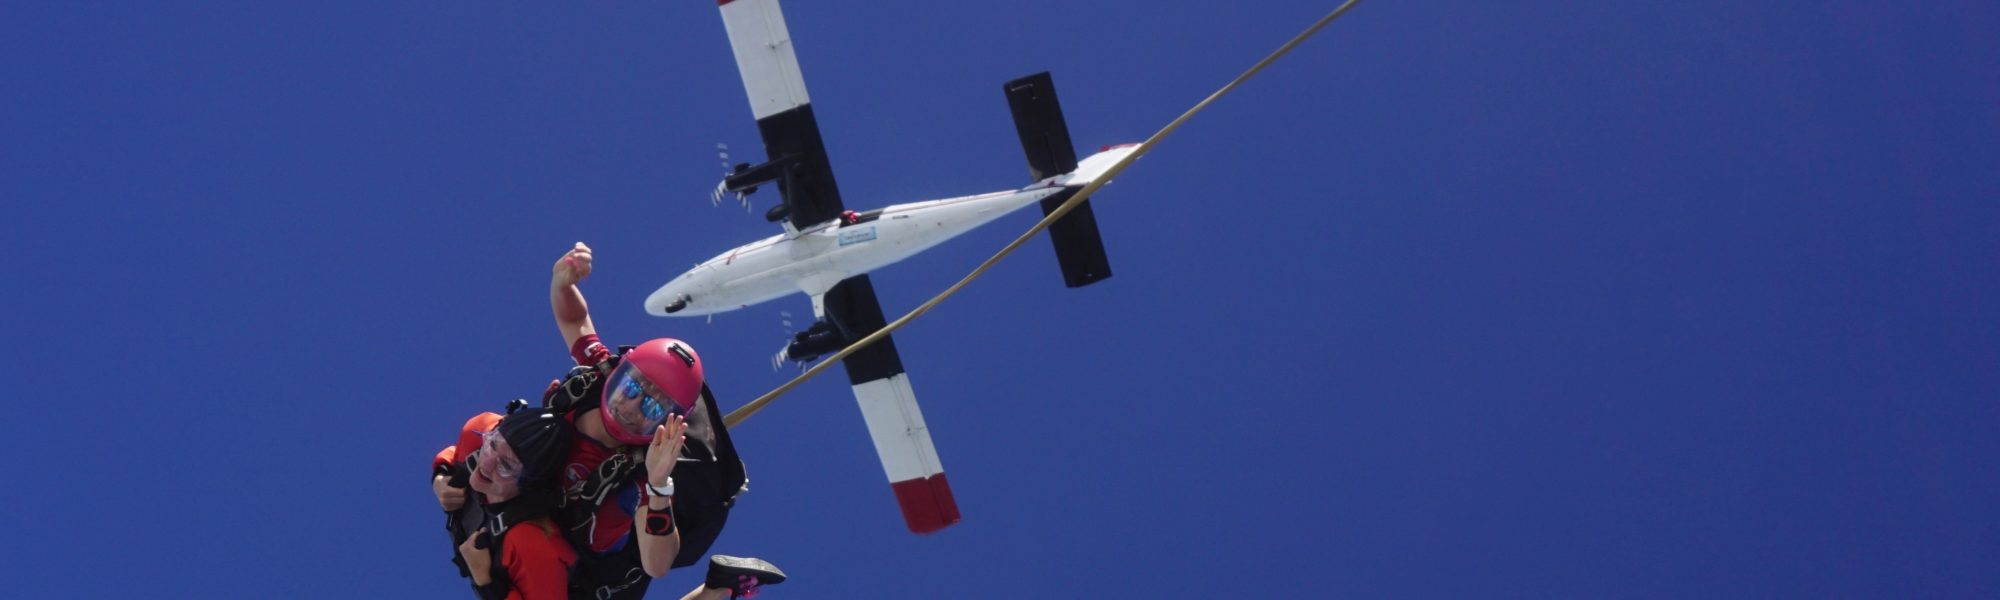 A tandem instructor deploys the drogue in free fall during a skydive